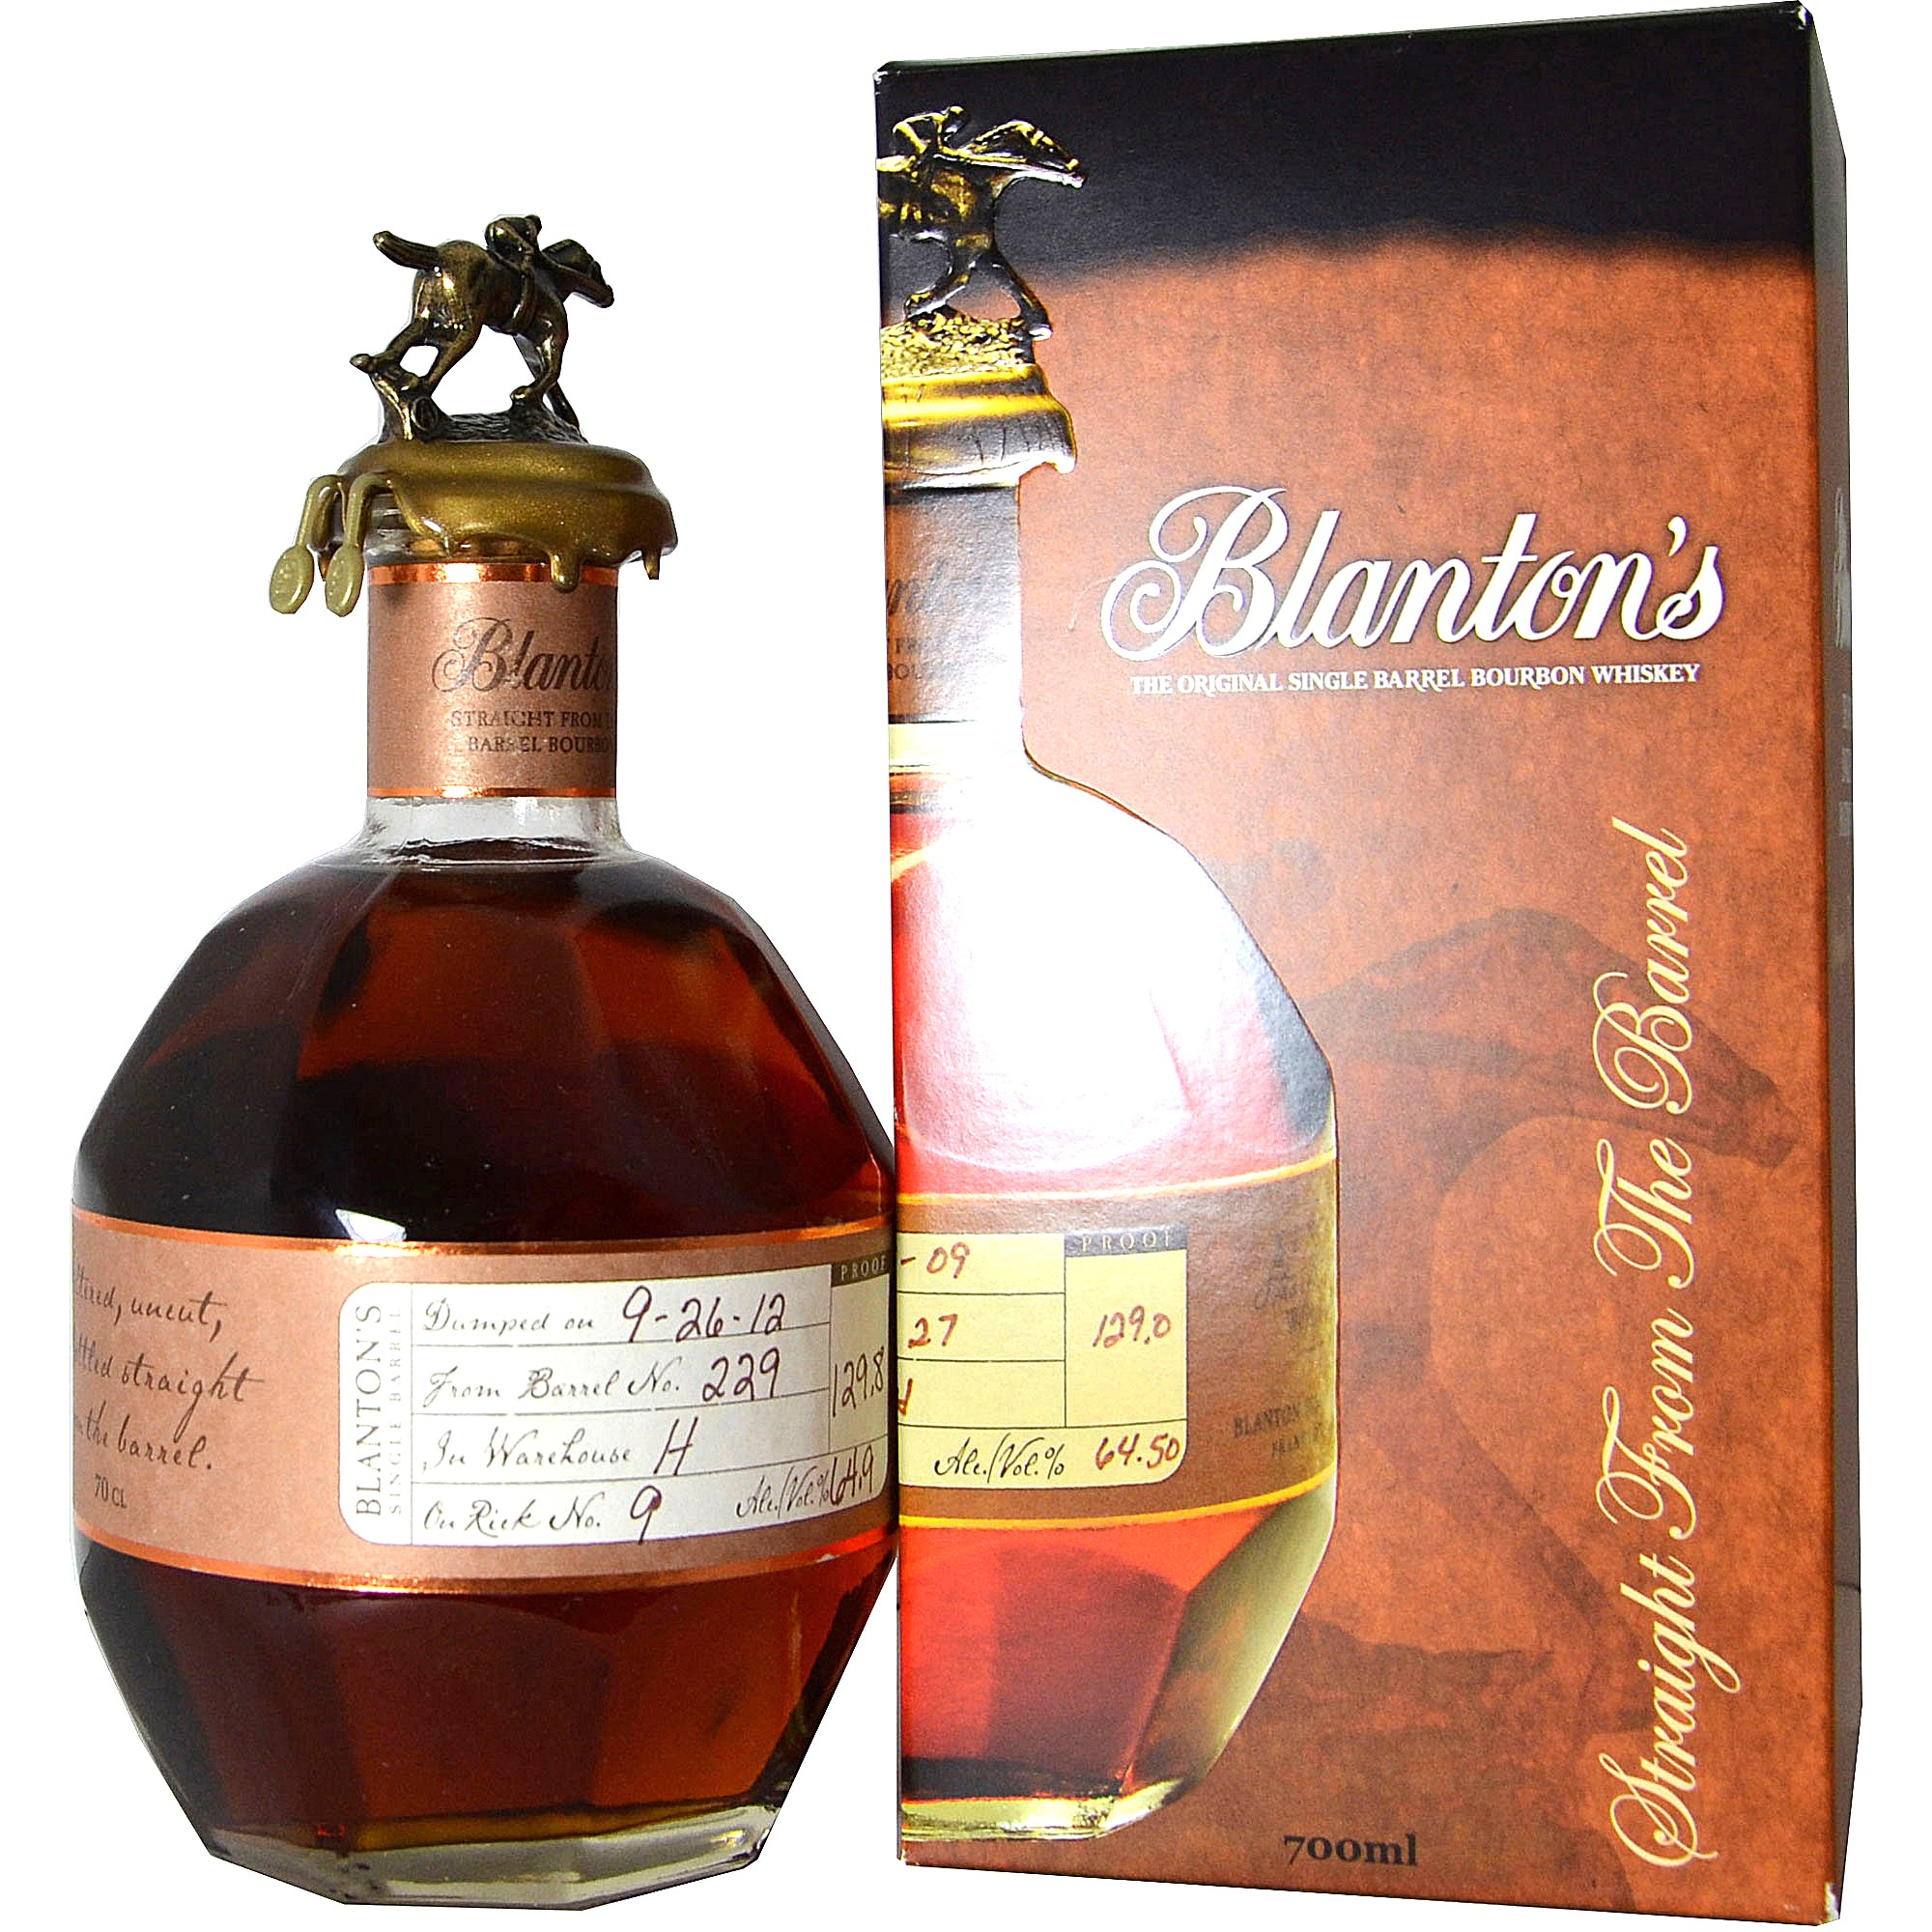 Blantons Straight from the Barrel (USA: Bourbon)